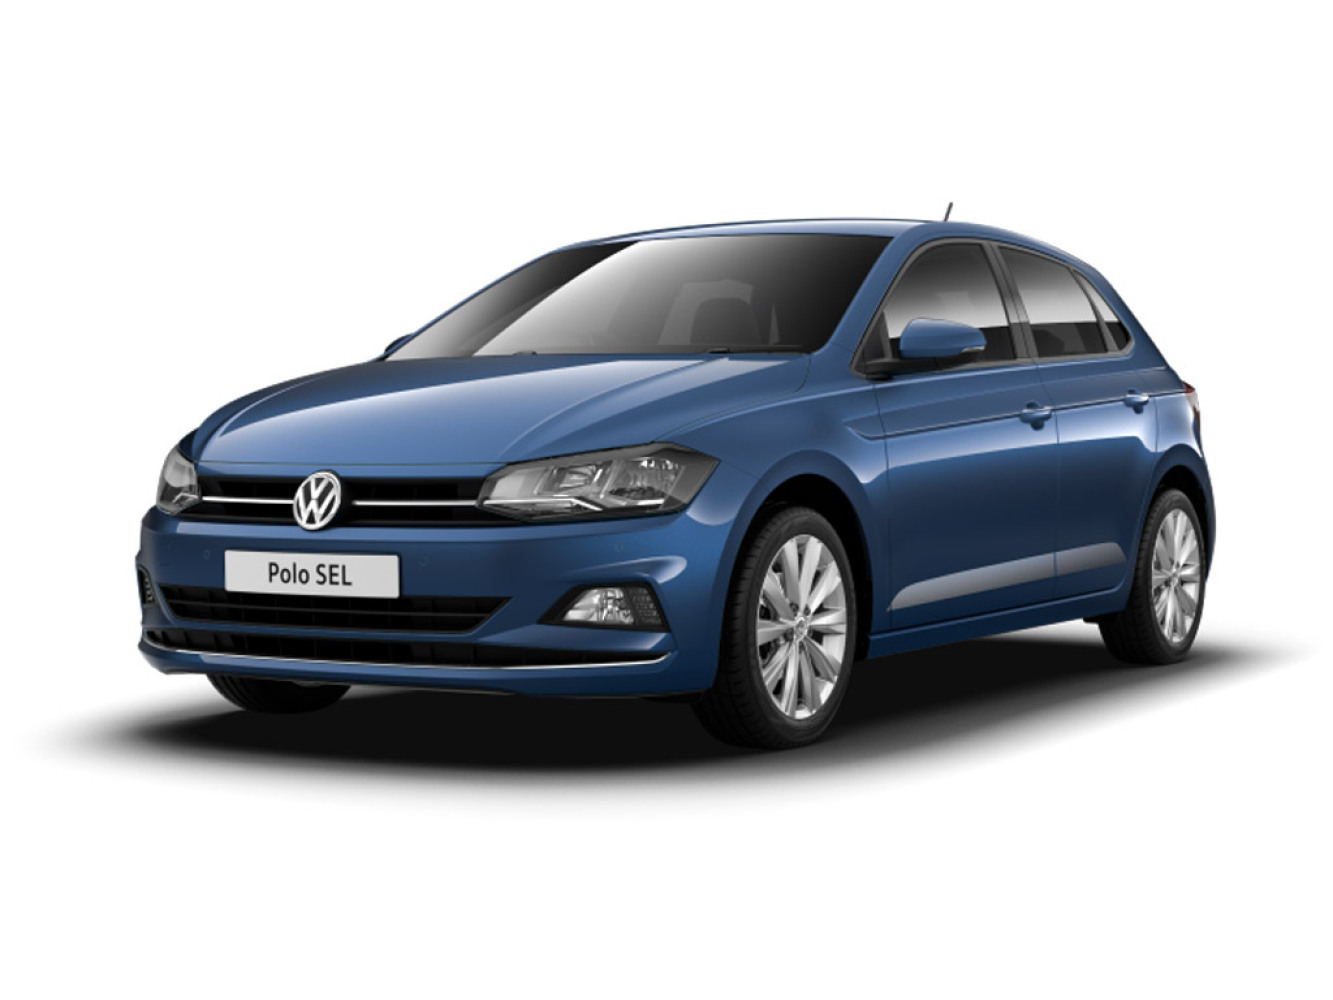 new volkswagen polo 1 0 tsi 115 sel 5dr petrol hatchback for sale vertu volkswagen. Black Bedroom Furniture Sets. Home Design Ideas